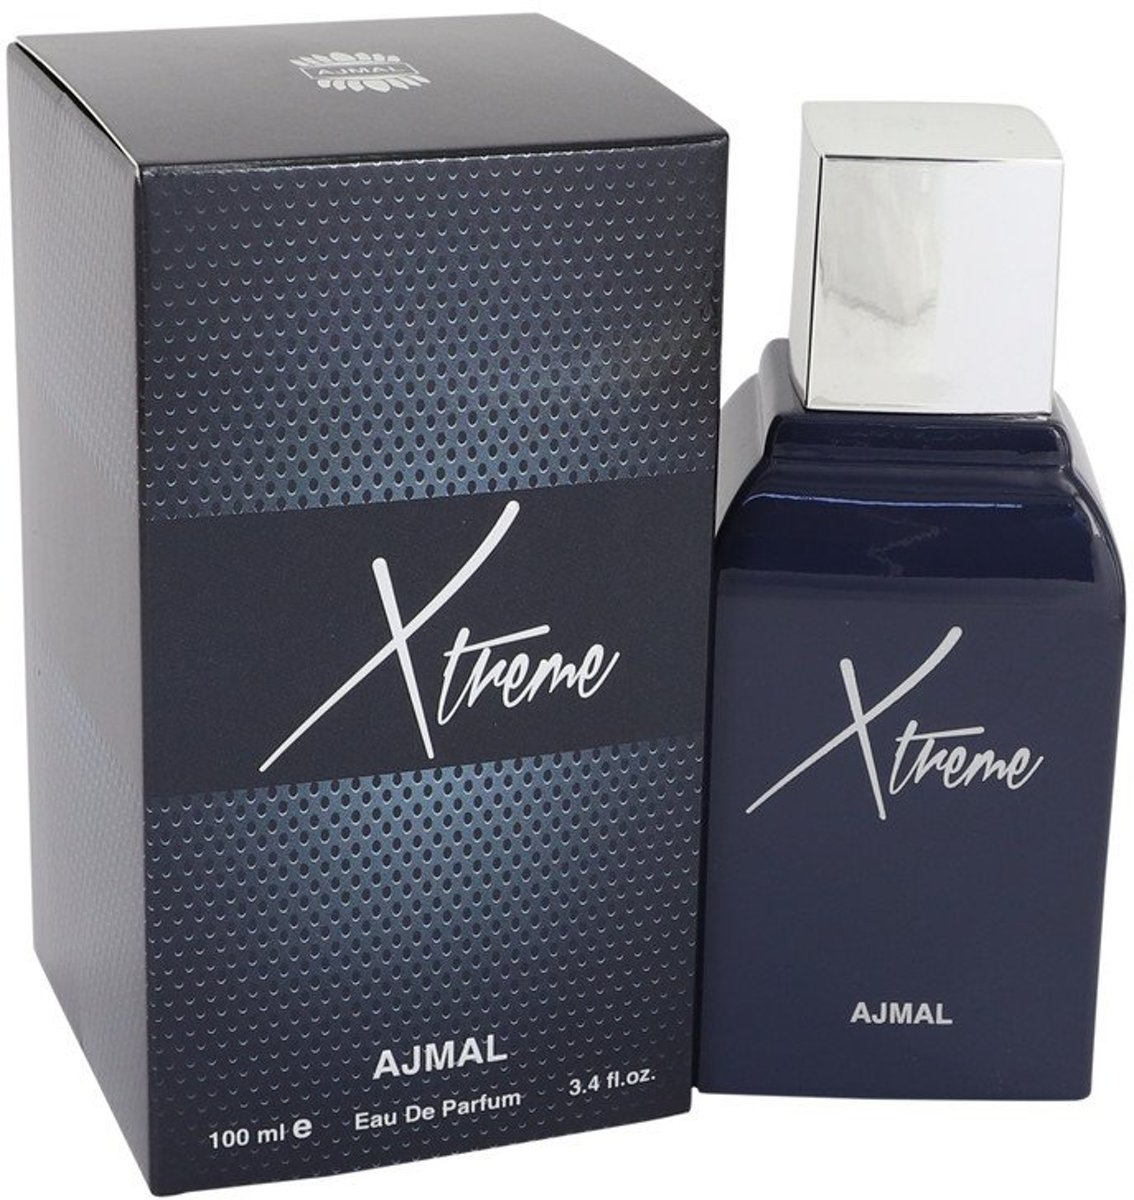 Ajmal Xtreme eau de parfum spray 100 ml